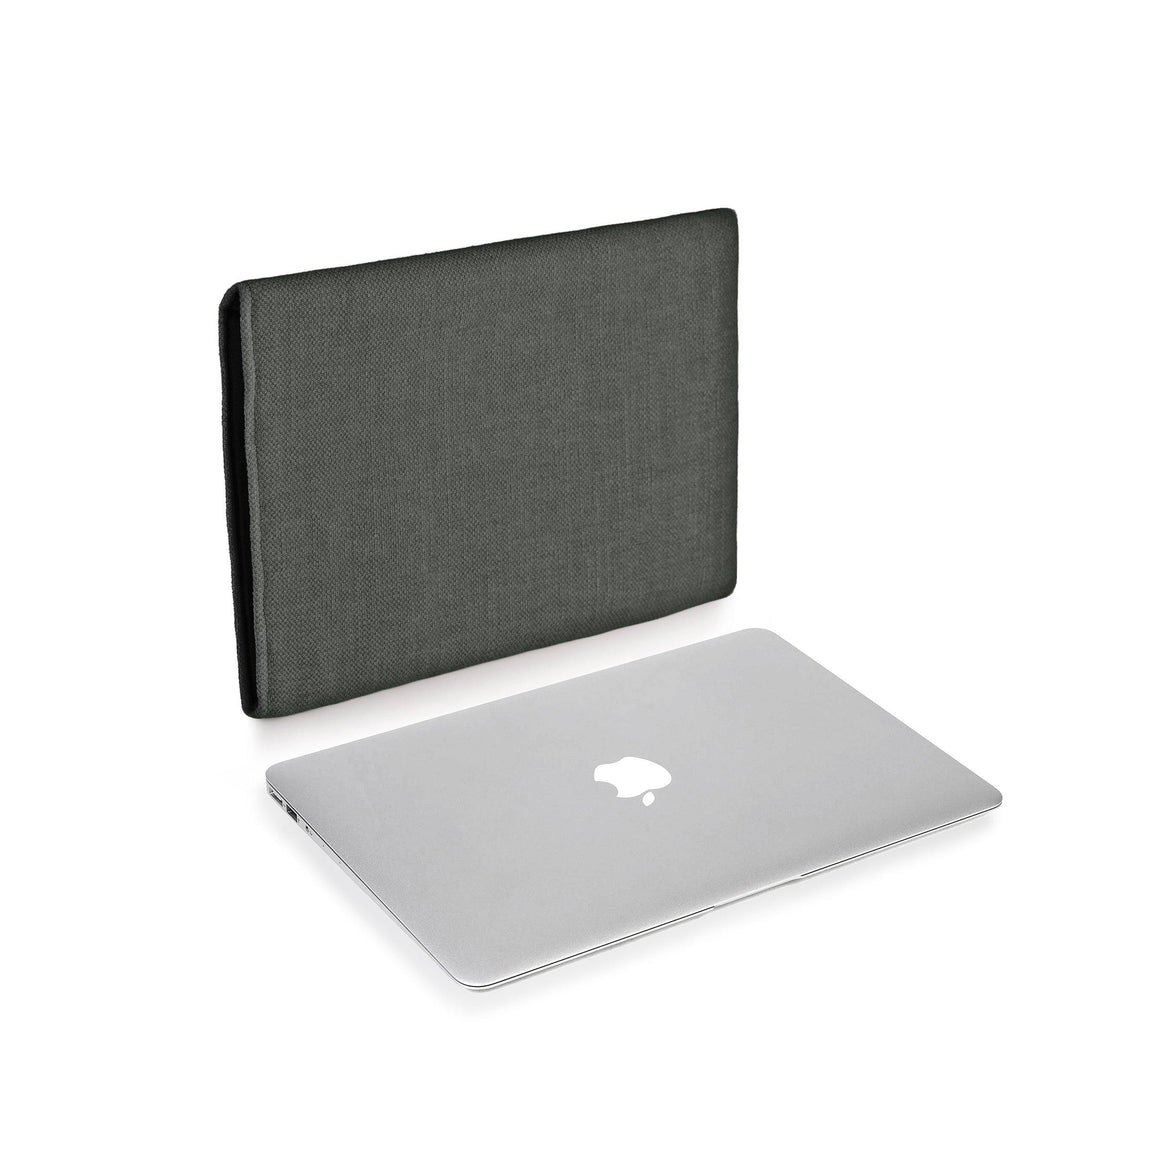 MacBook Linen Cypress